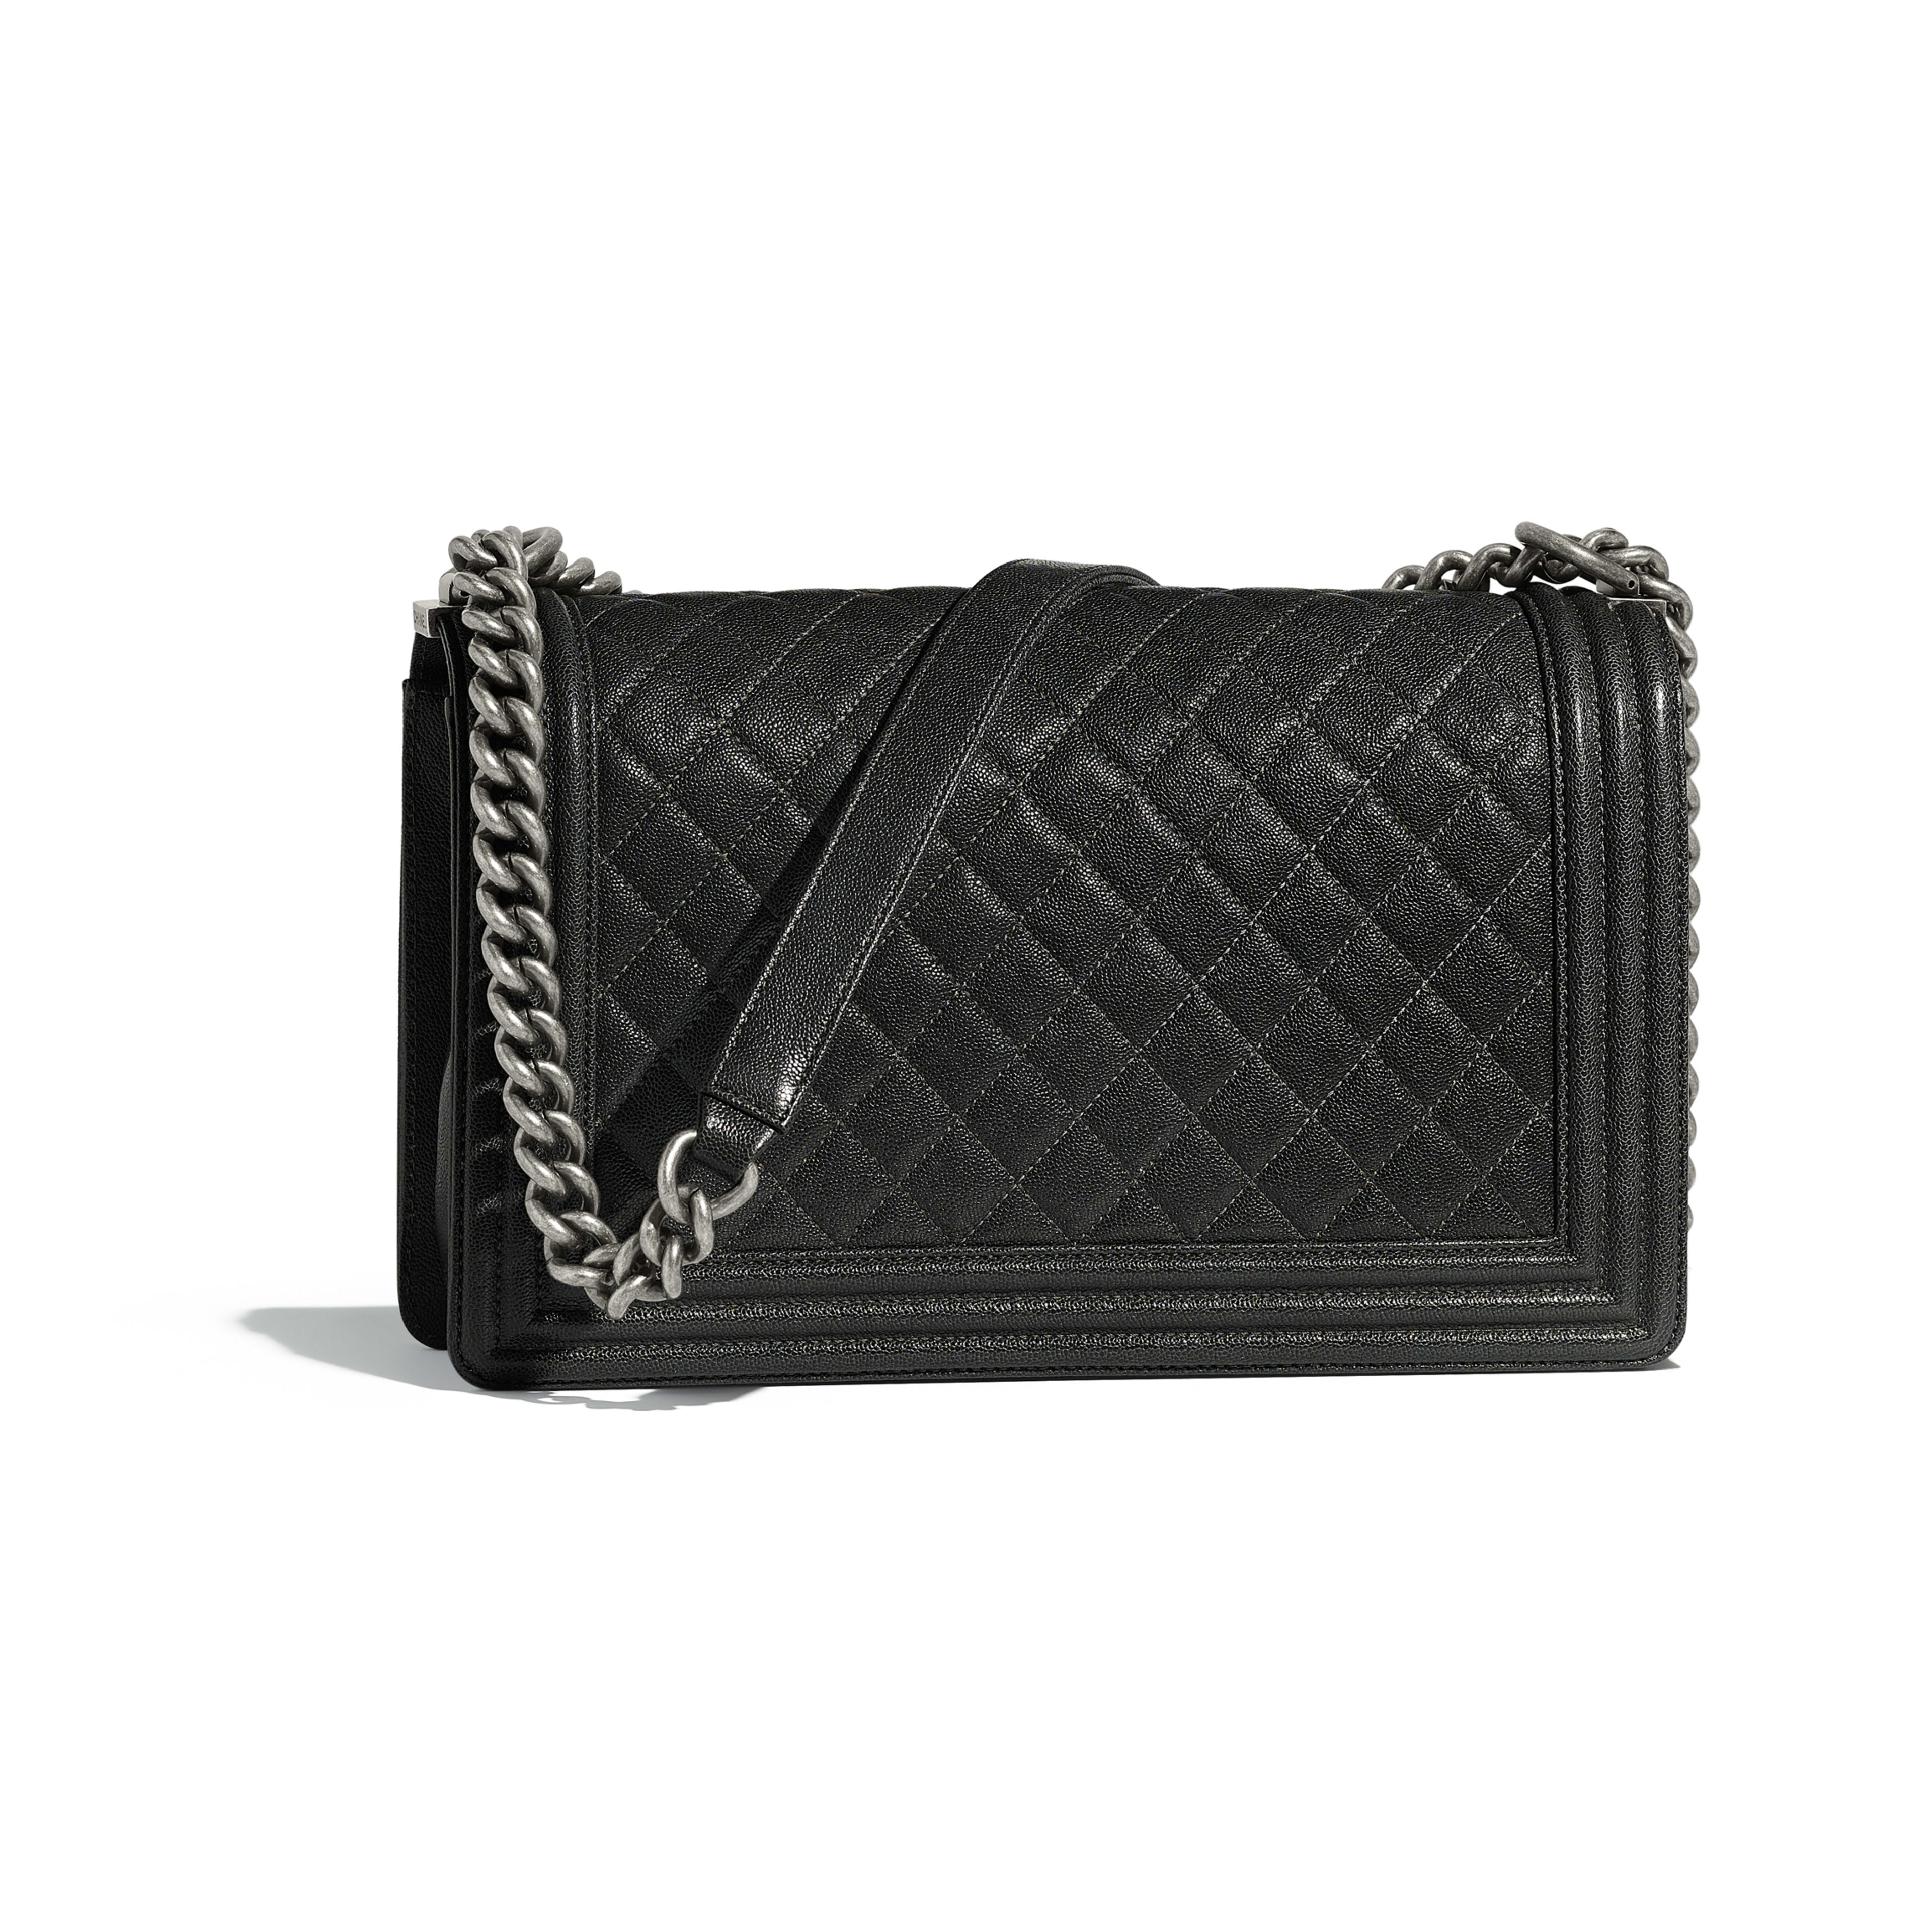 Large BOY CHANEL Handbag Grained Calfskin & Ruthenium-Finish Metal Charcoal -                                       view 2 - see full sized version